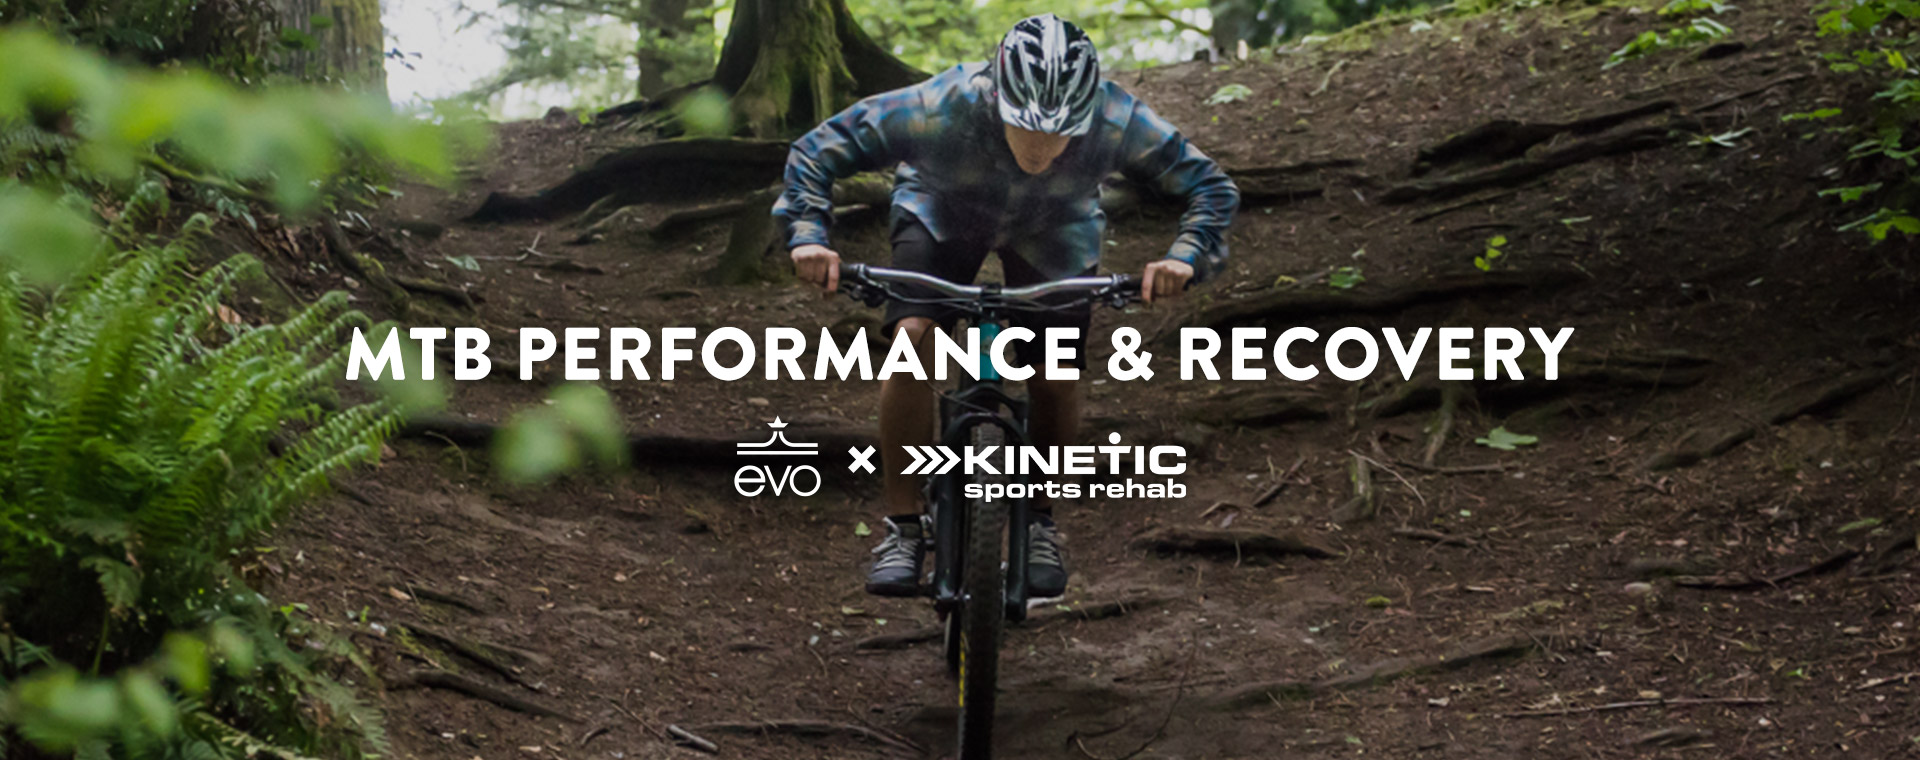 Mountain Bike Performance & Recovery Guides | evo